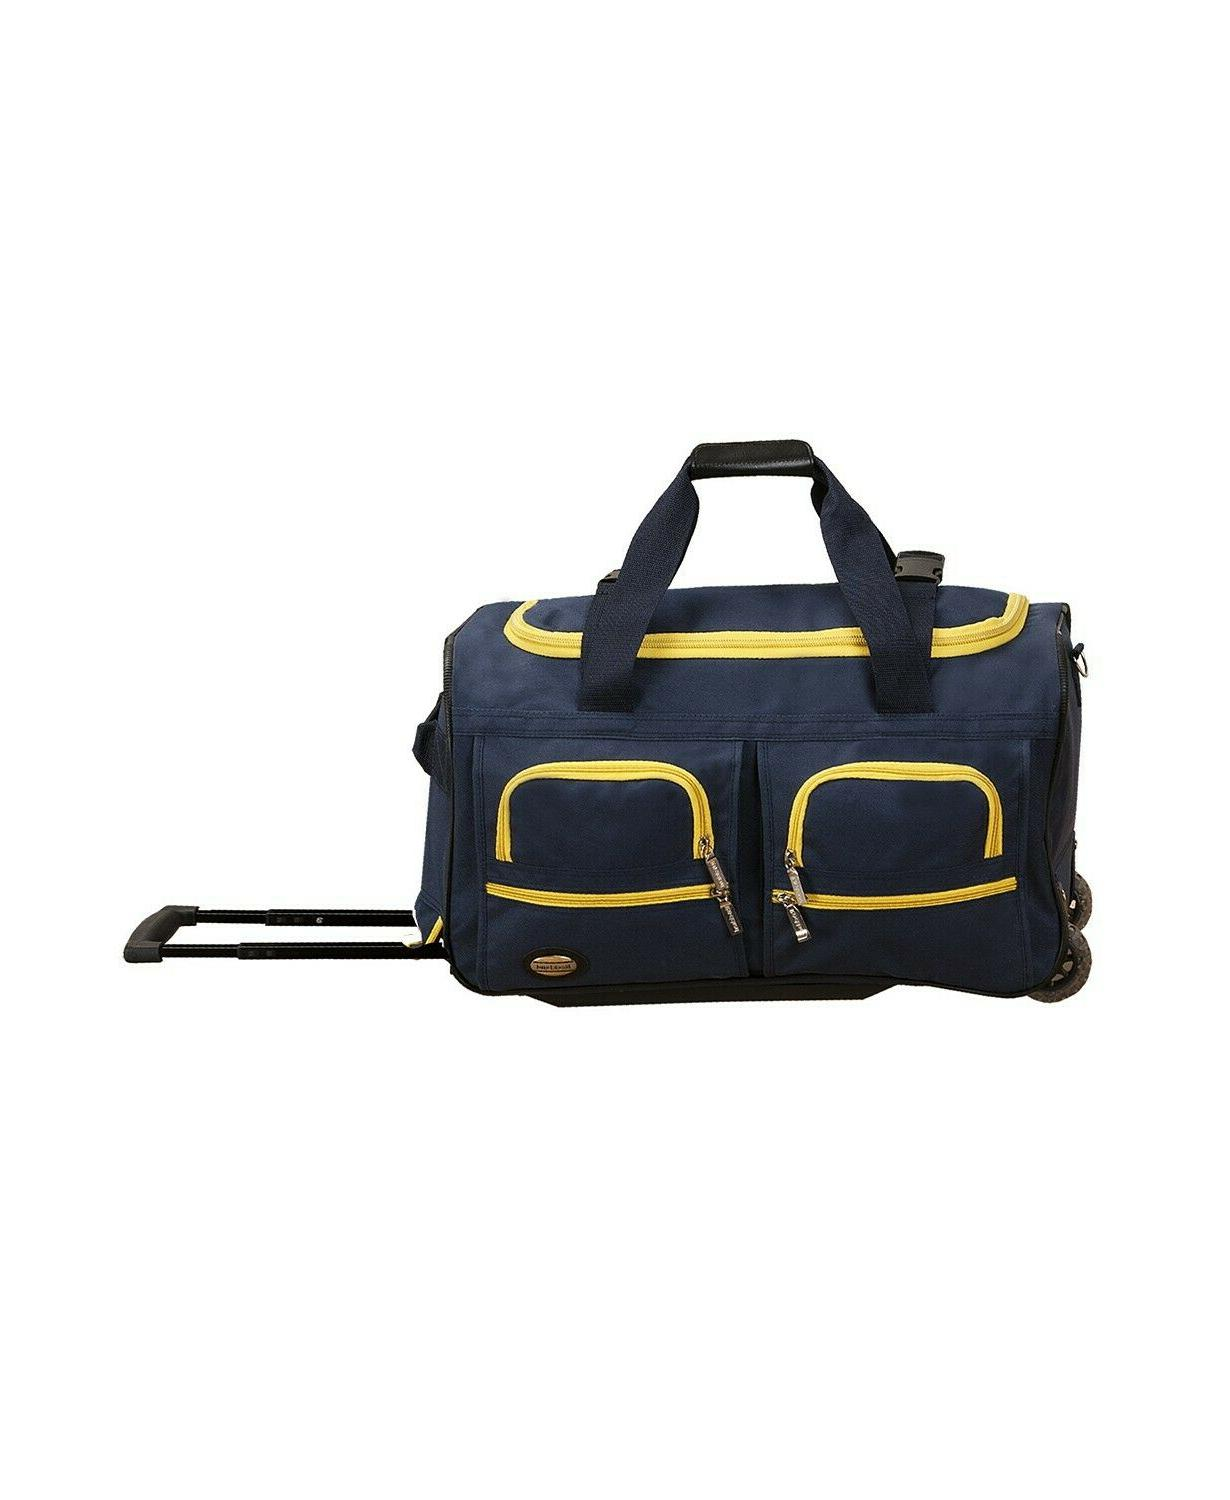 Rockland Luggage Rolling Duffle